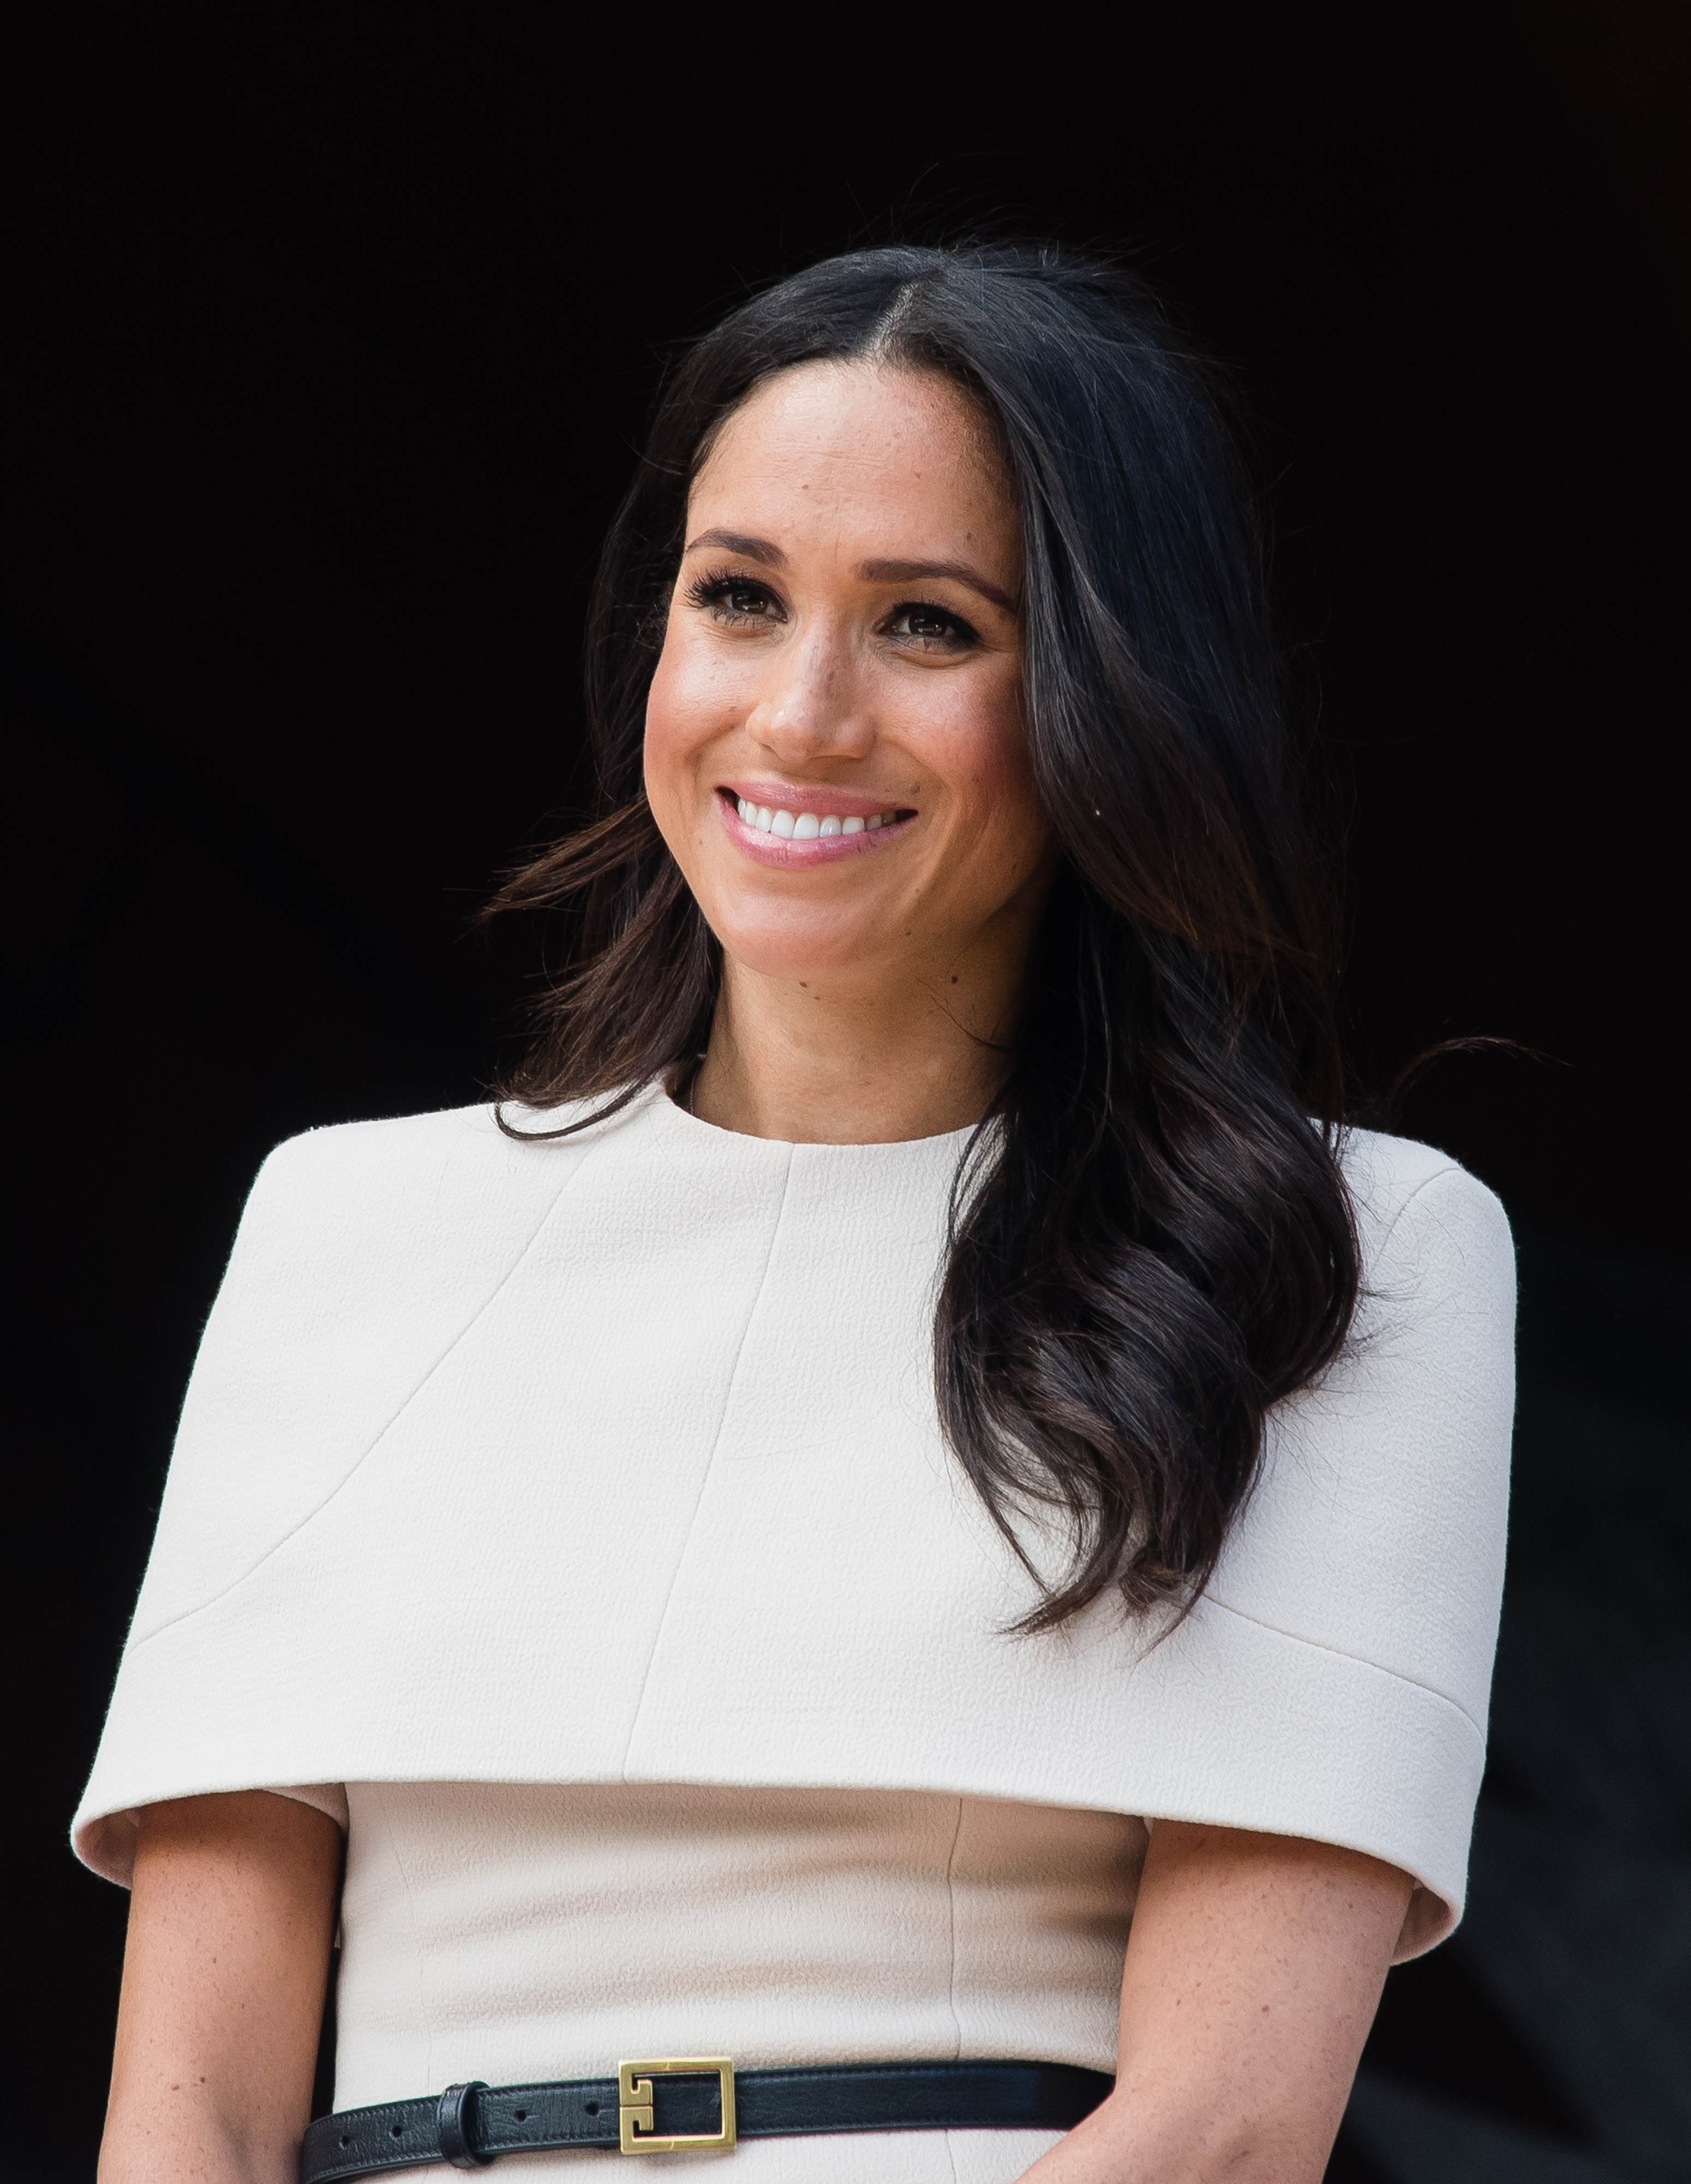 meghan markle stuns in givenchy for day out with the queen hiphollywood https www hiphollywood com 2018 06 meghan markle stuns in givenchy for day out with the queen